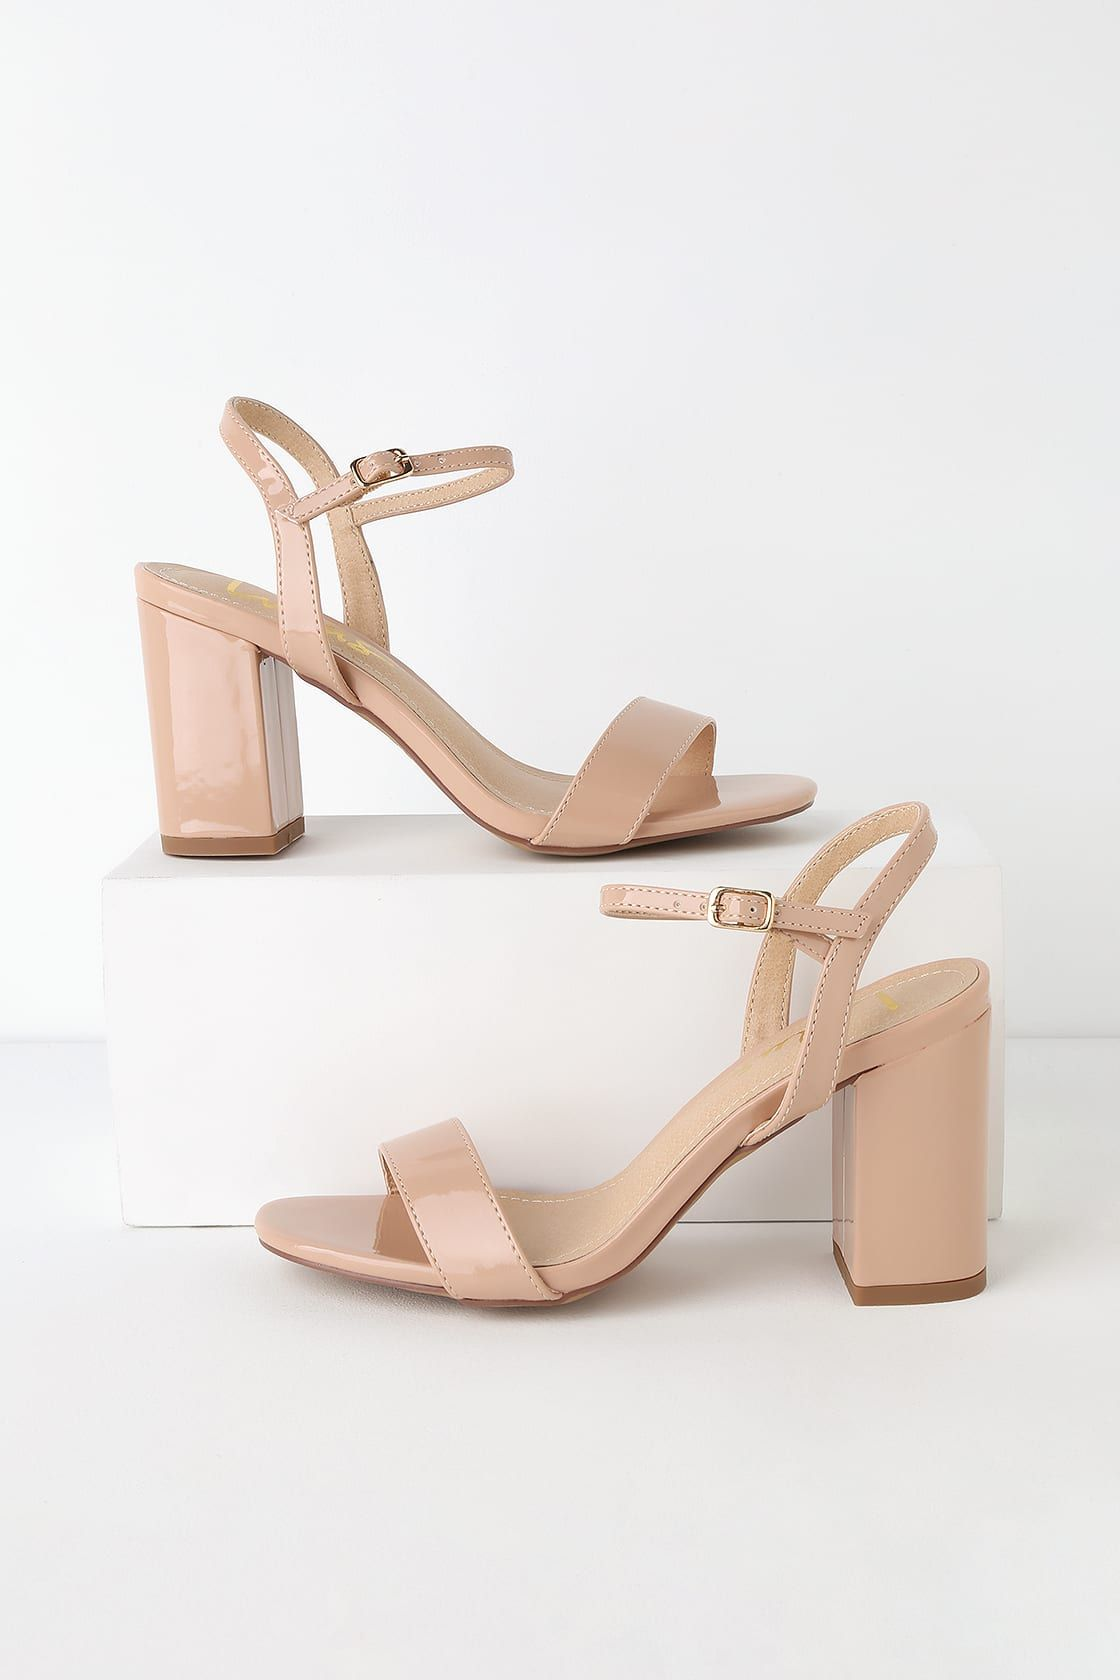 a83916821ff1 Cute Chunky Heel Sandals - Nude Patent High Heel Sandals